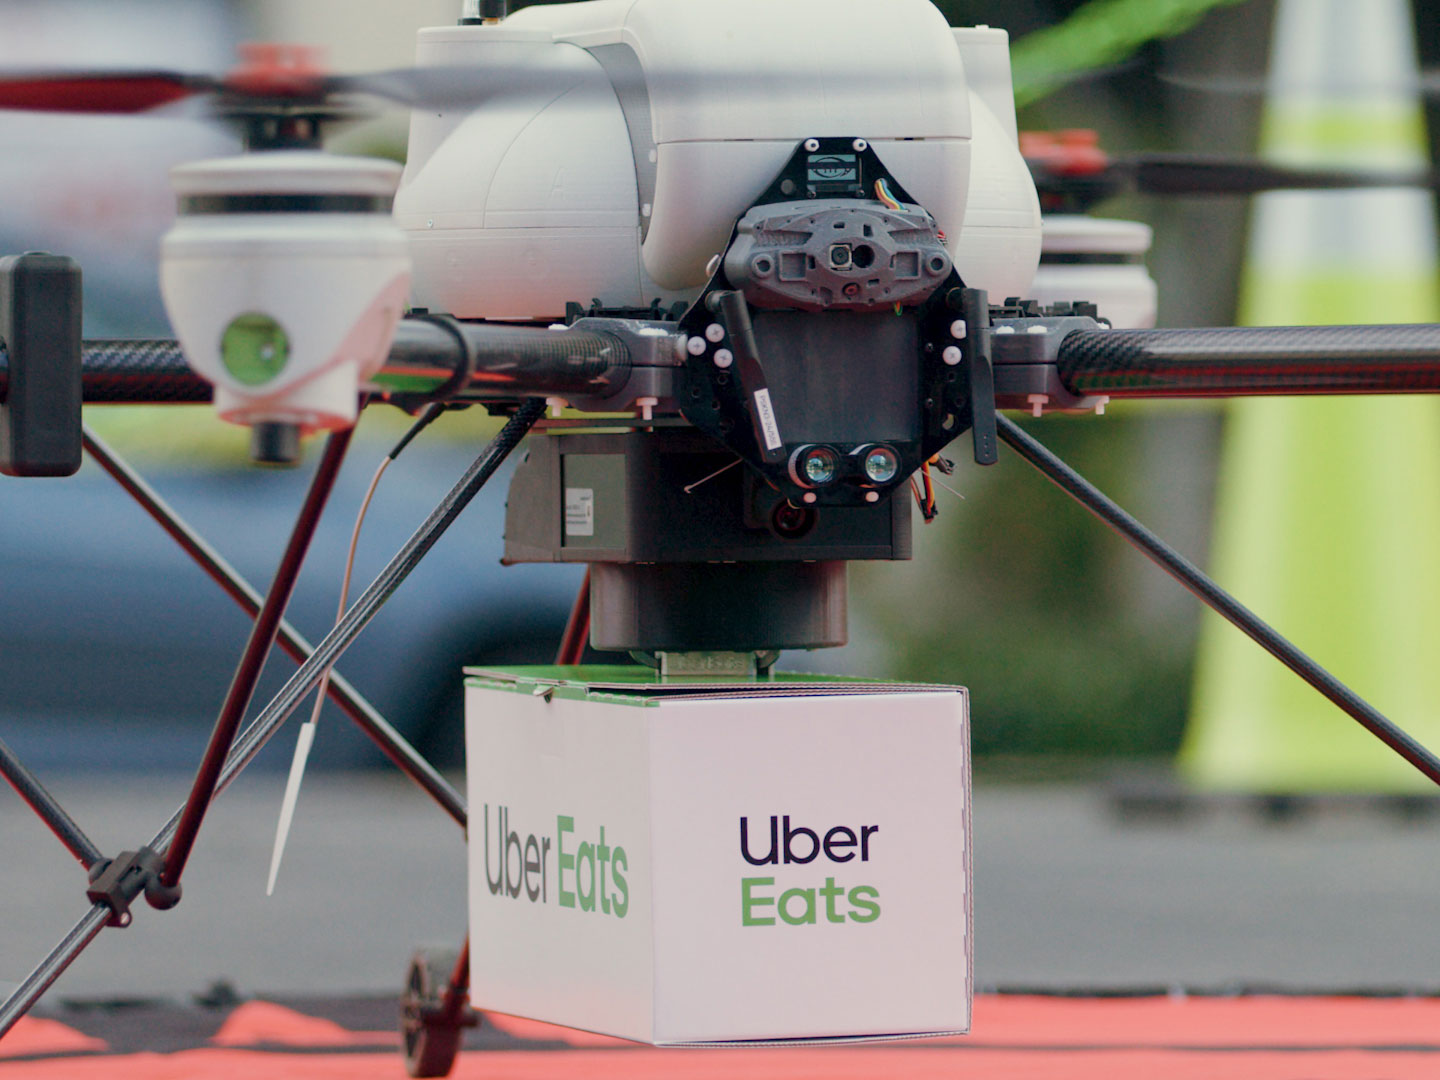 Uber Eats Drone Delivery